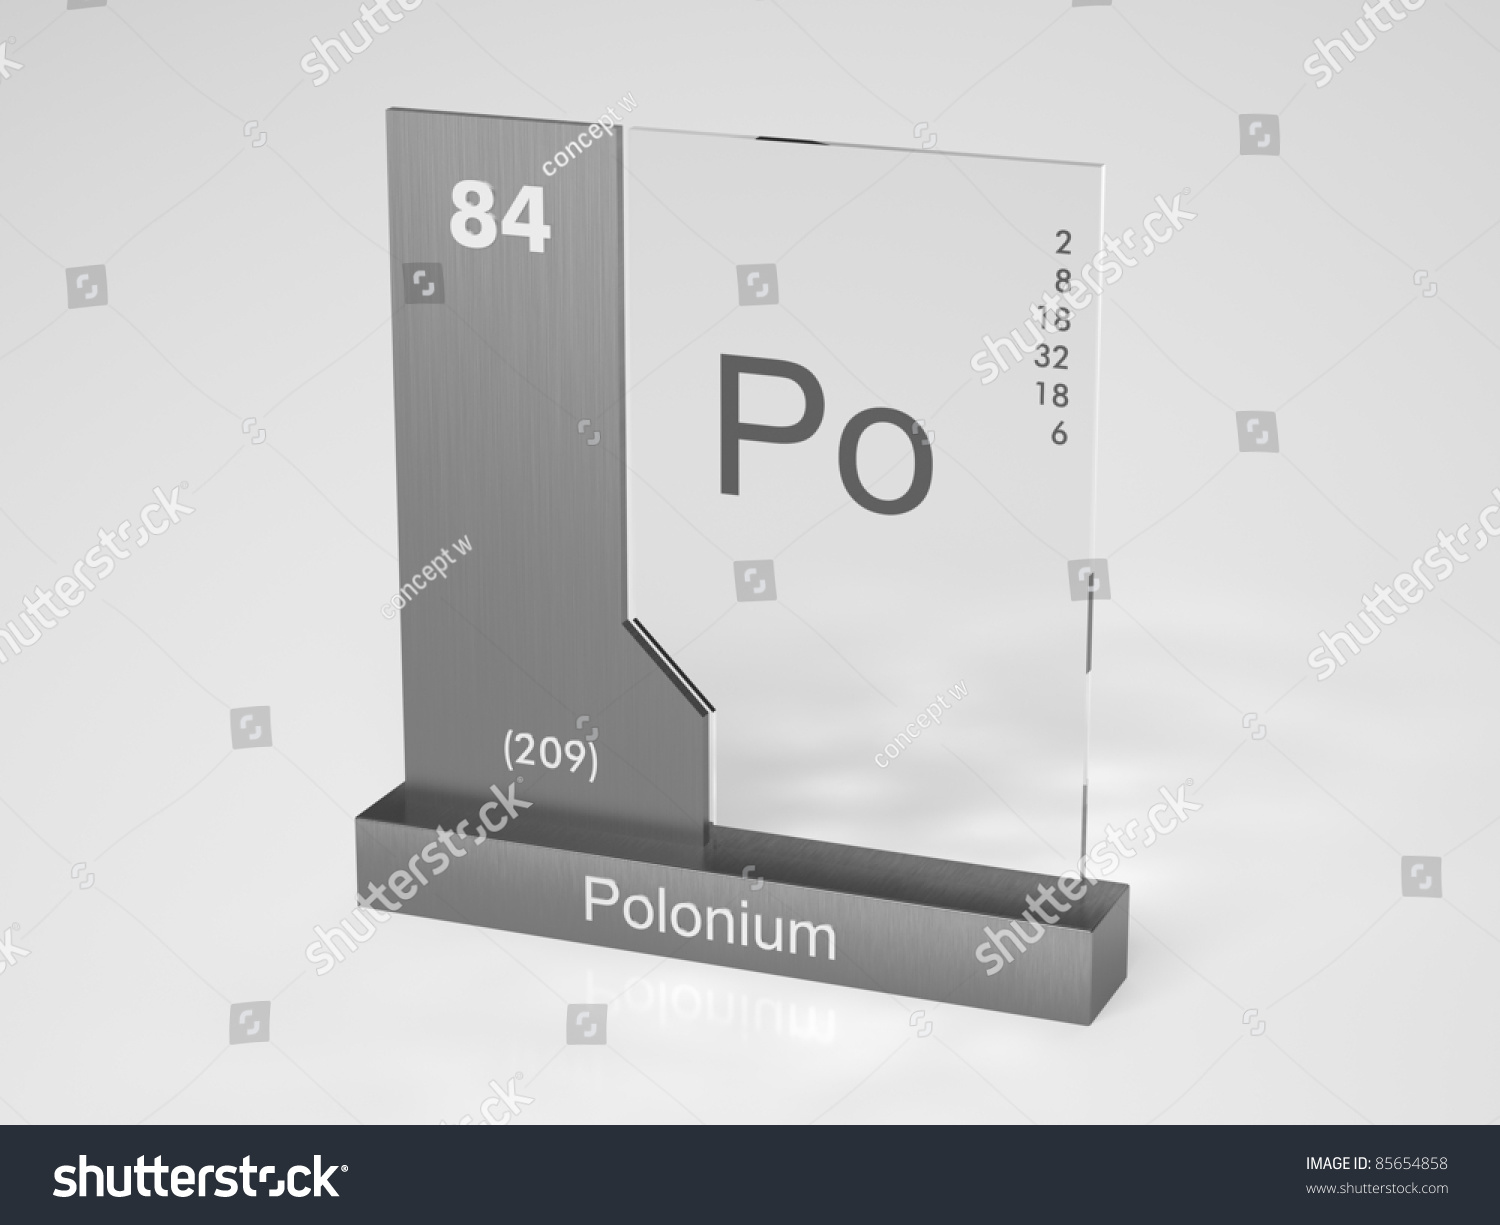 Polonium symbol po chemical element periodic stock illustration polonium symbol po chemical element of the periodic table gamestrikefo Image collections